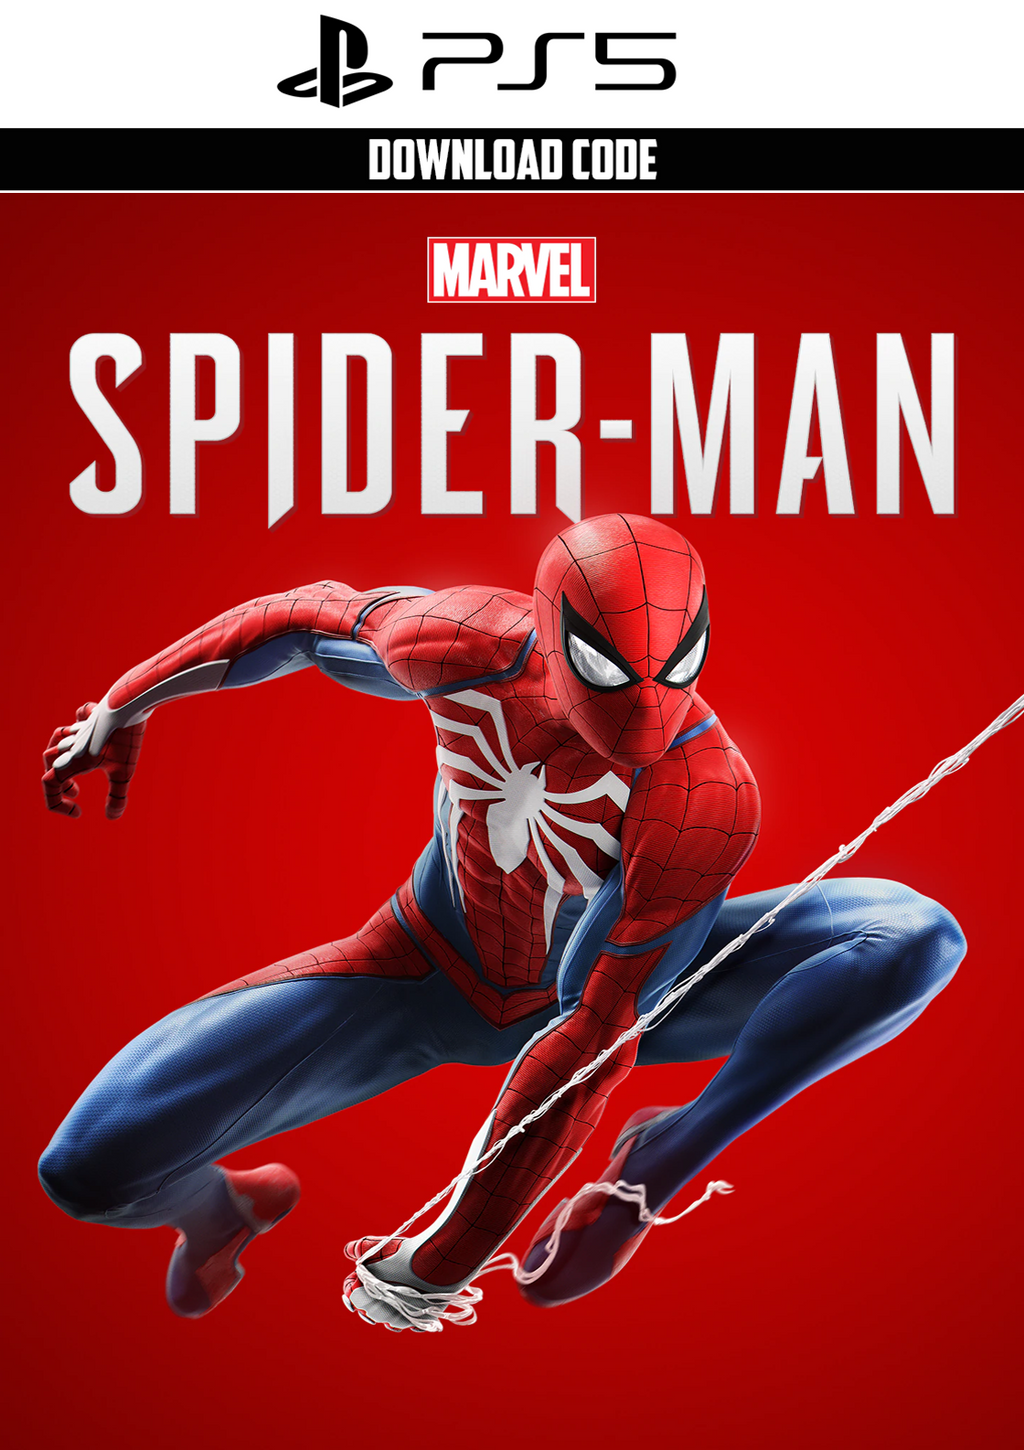 Marvel's Spiderman Remastered - PS5 Code